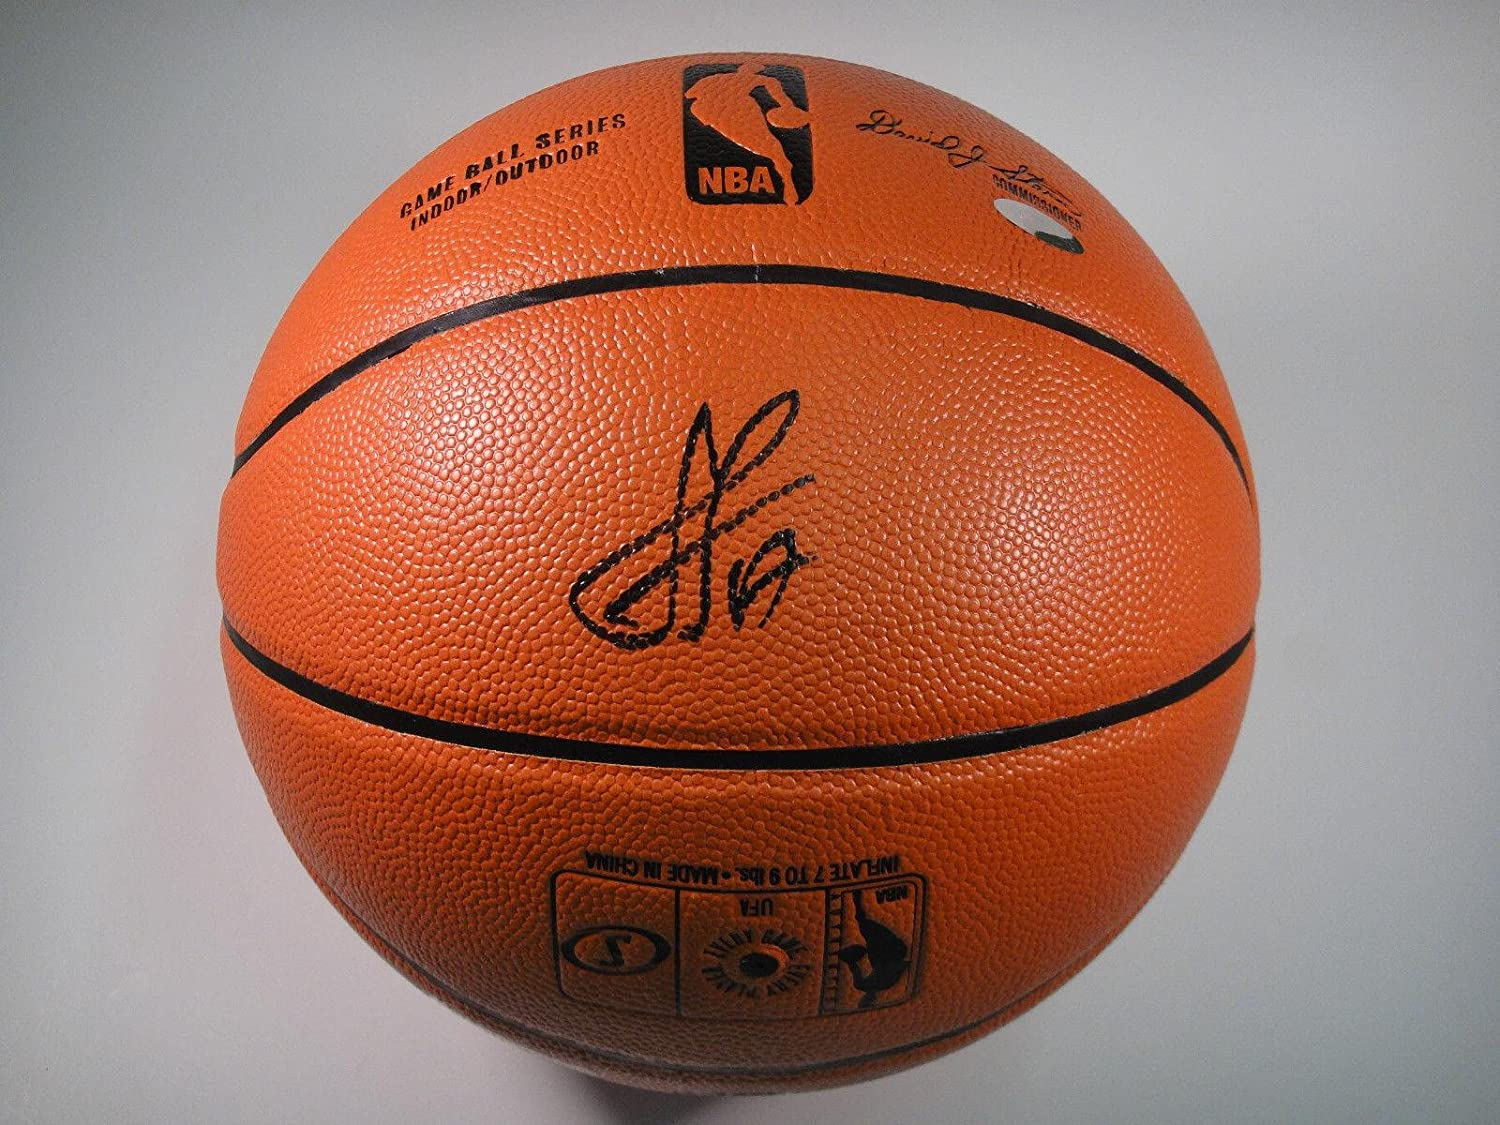 0e54fd6b7 Signed Jeremy Lin Basketball - Authentic  17 Spalding Official Game -  Steiner Sports Certified - Autographed Basketballs at Amazon s Sports  Collectibles ...